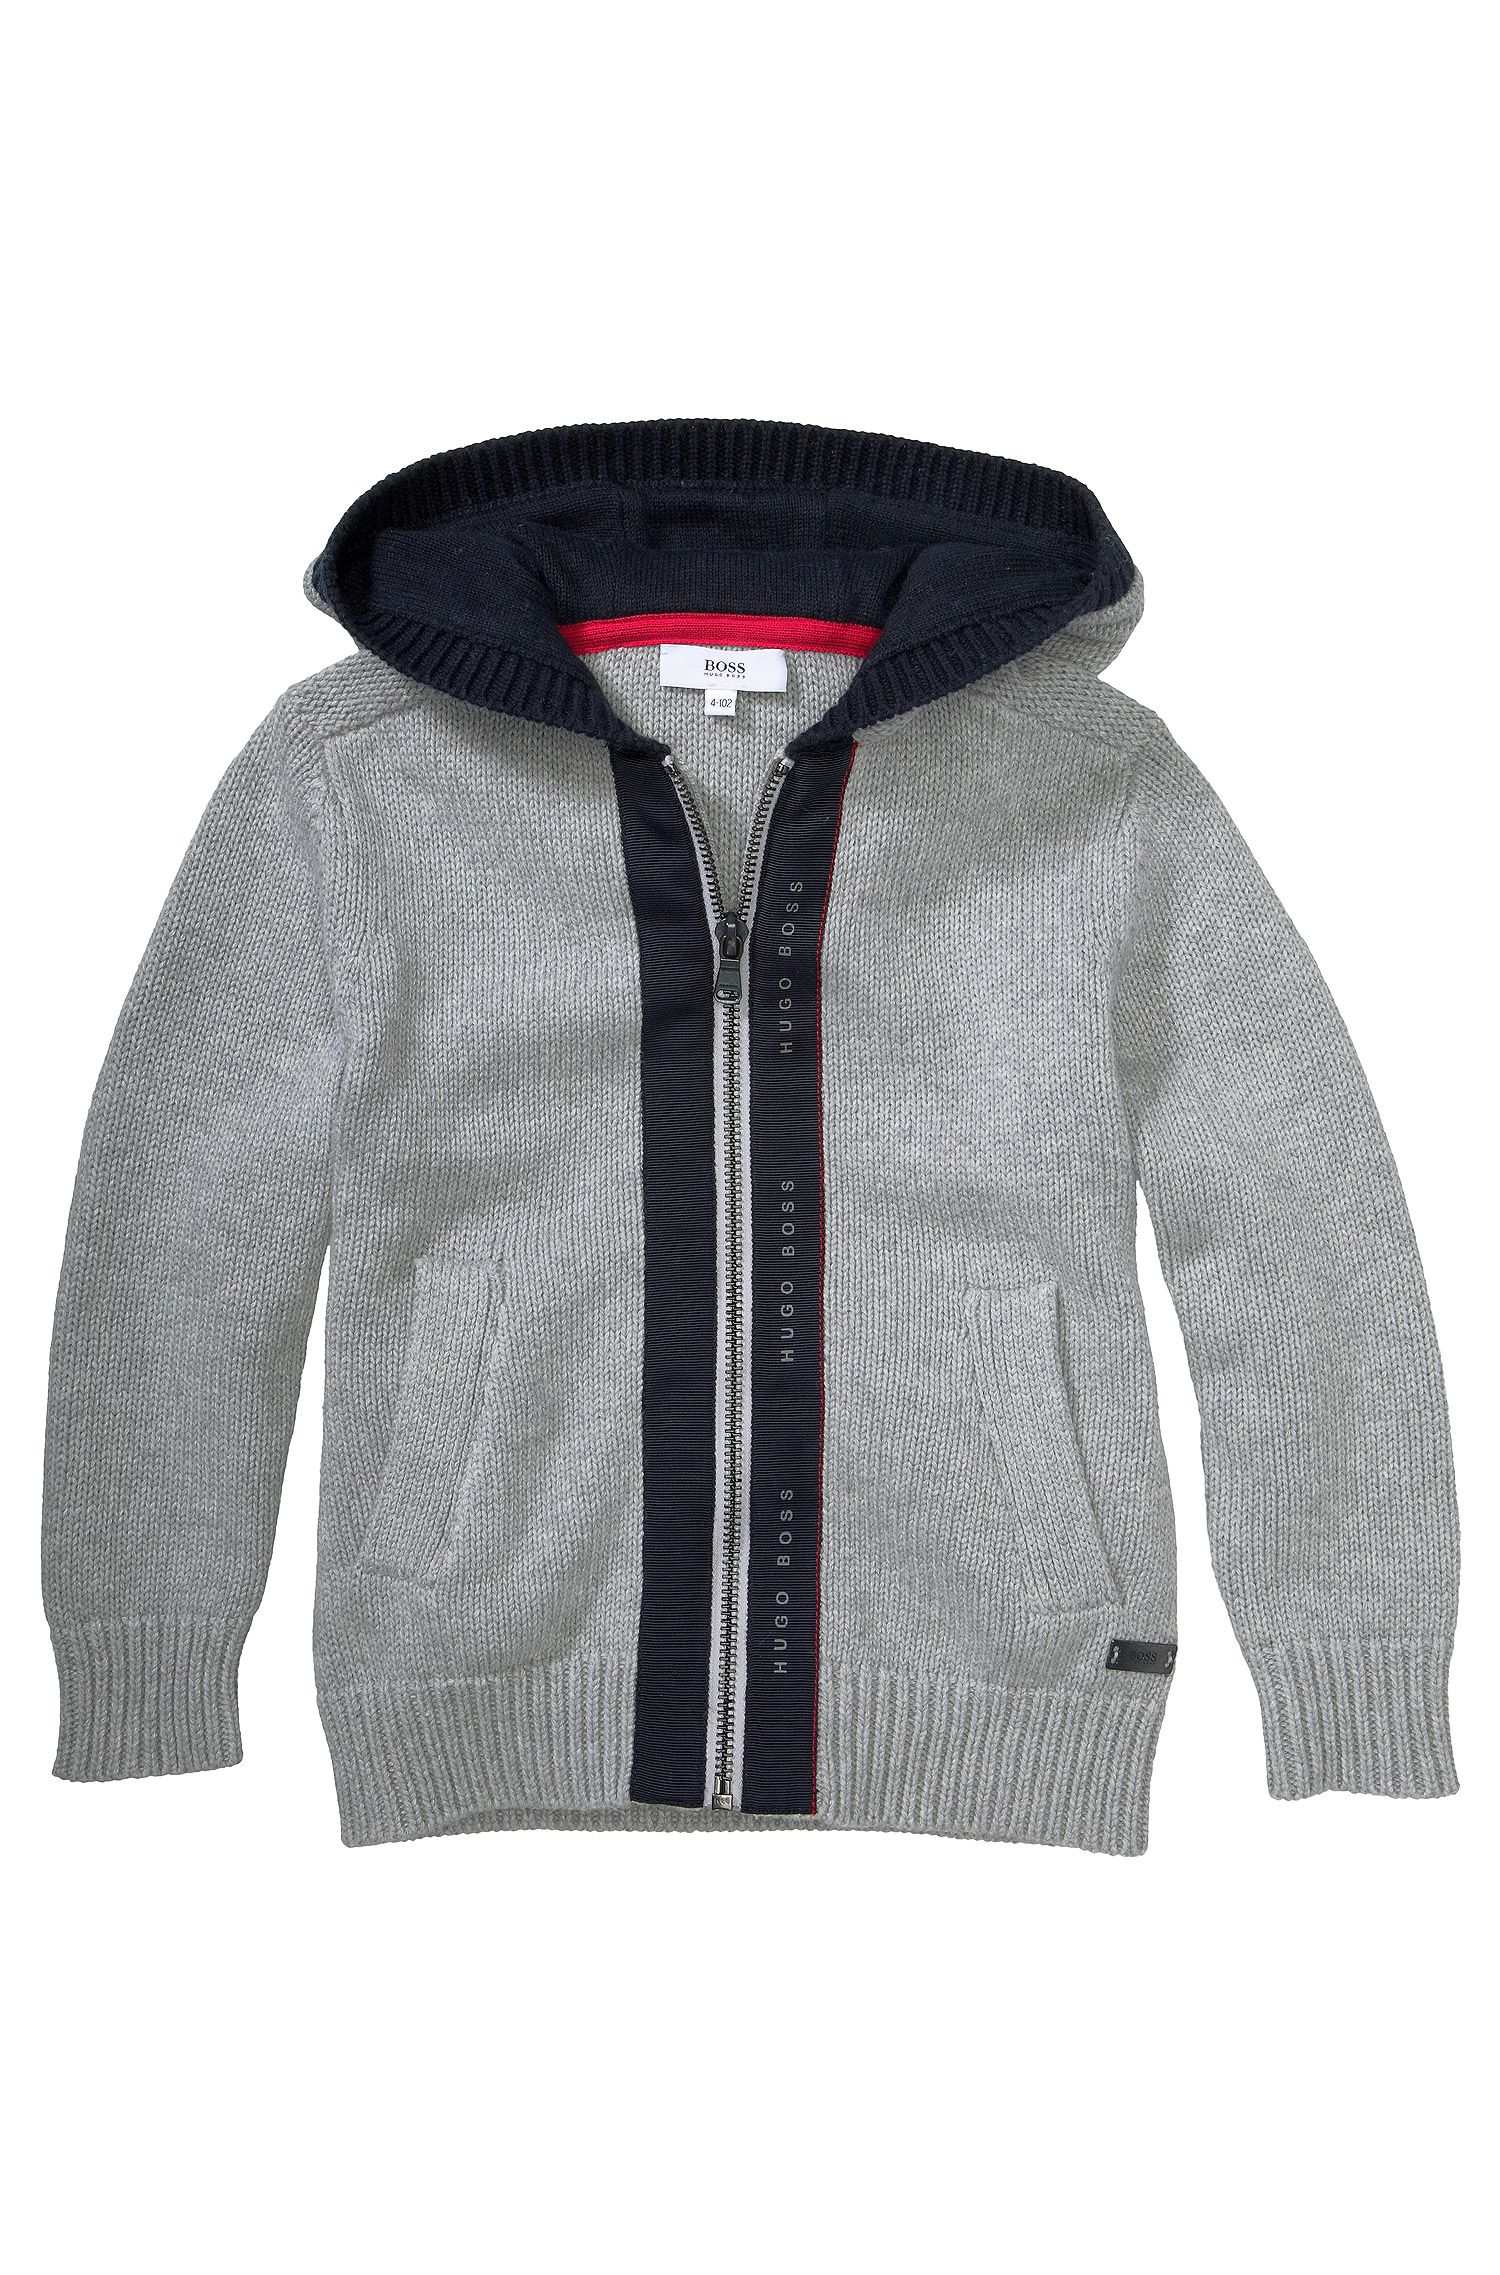 Kids-Strickjacke ´J25733` aus Baumwoll-Mix